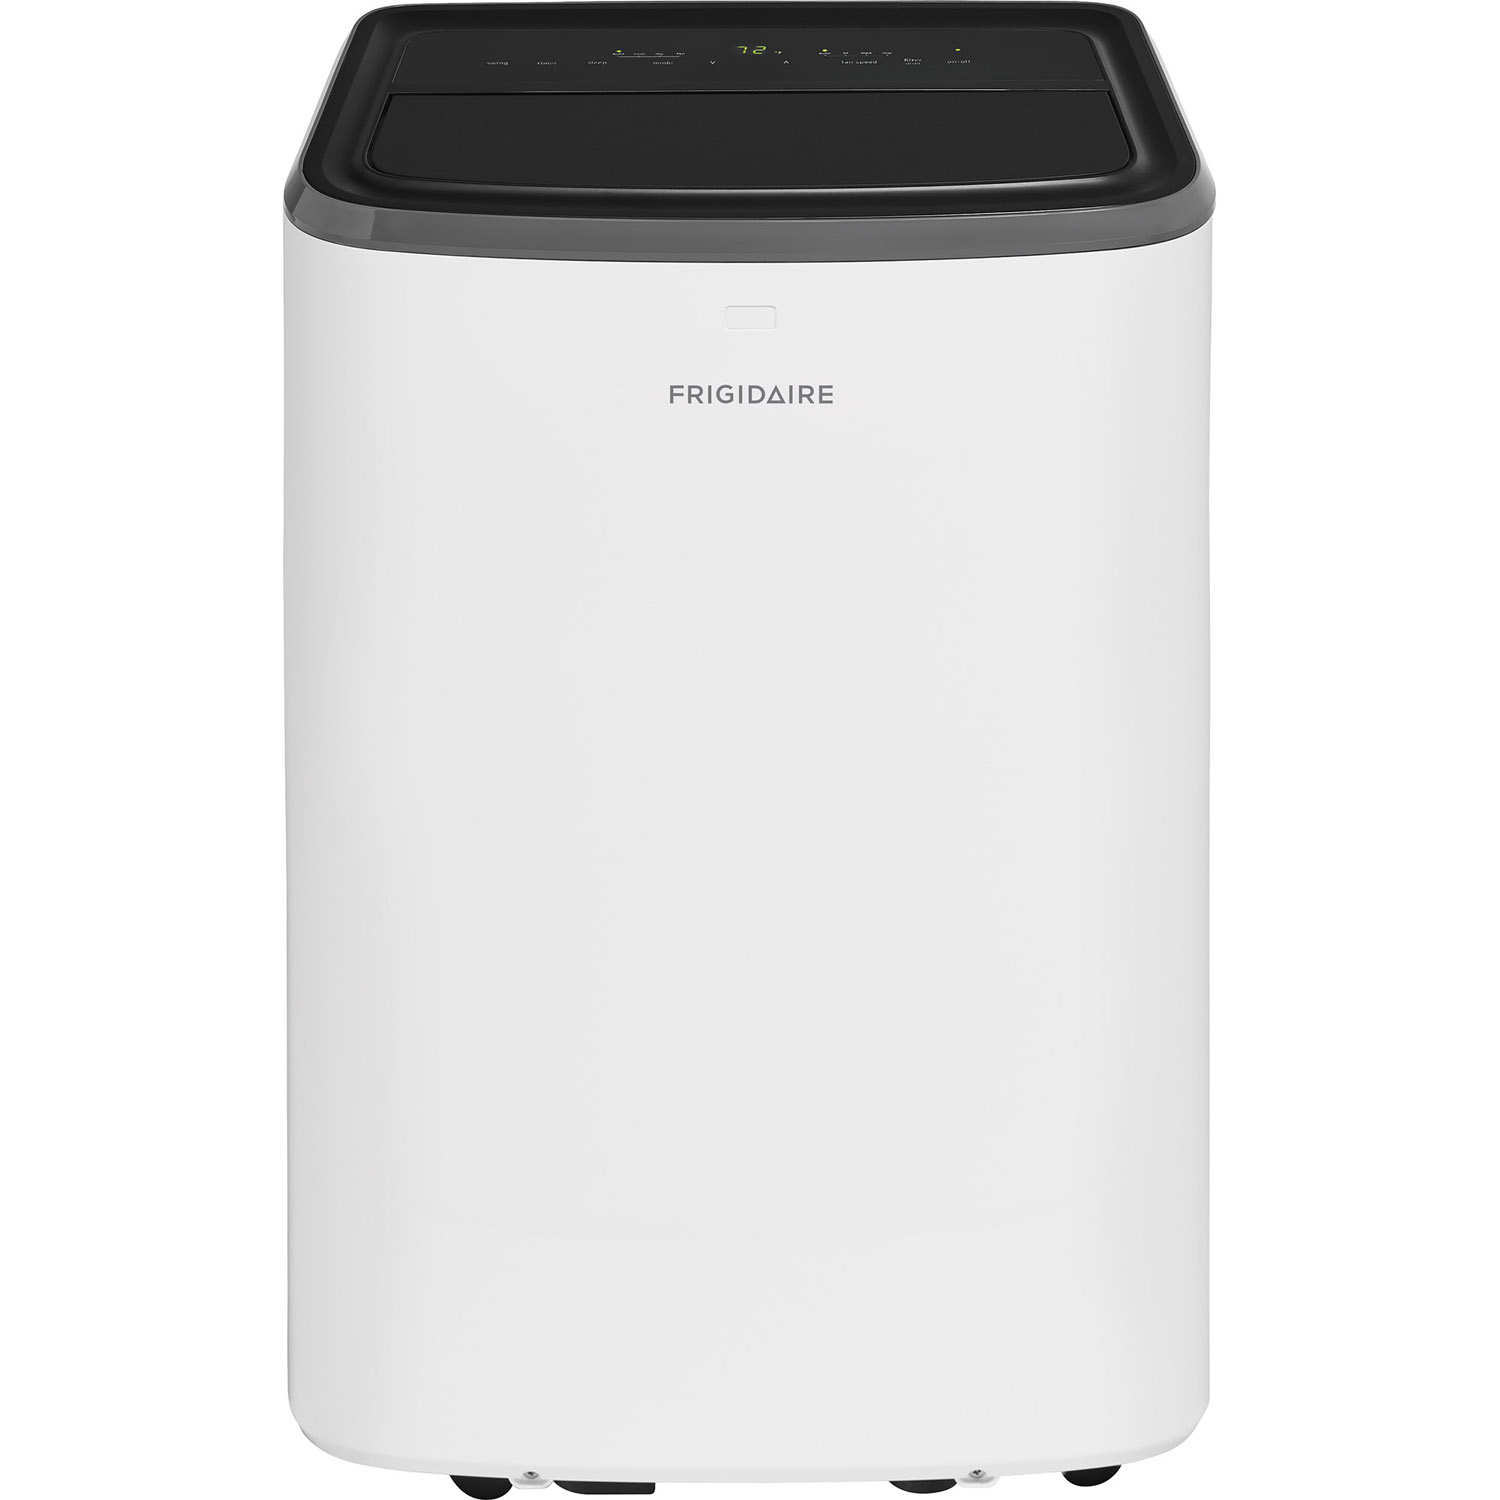 Frigidaire Home Comfort 10,000 BTU 10.9 EER 115V White Portable Air Conditioner